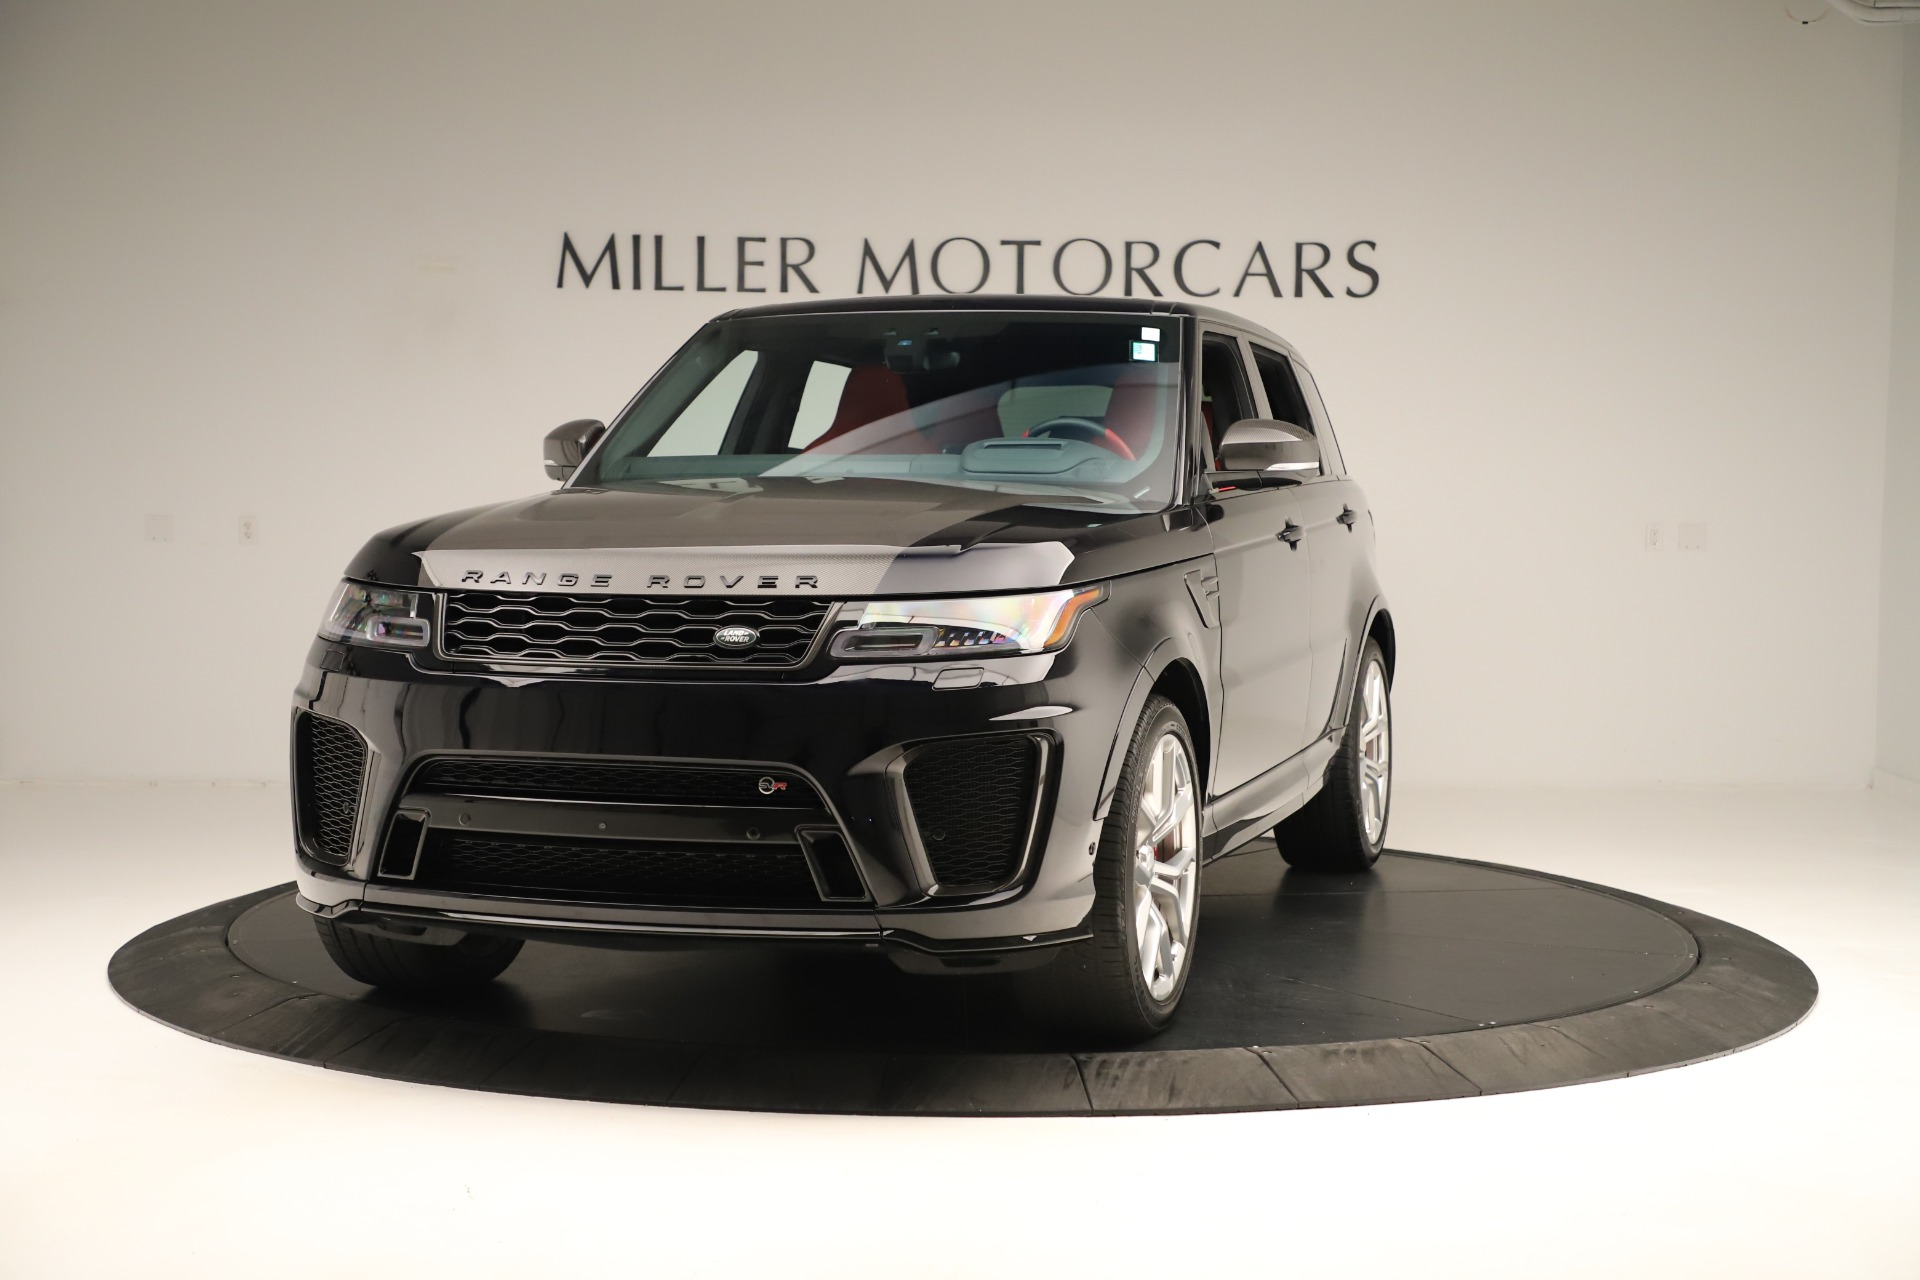 Used 2019 Land Rover Range Rover Sport SVR for sale Sold at Bentley Greenwich in Greenwich CT 06830 1